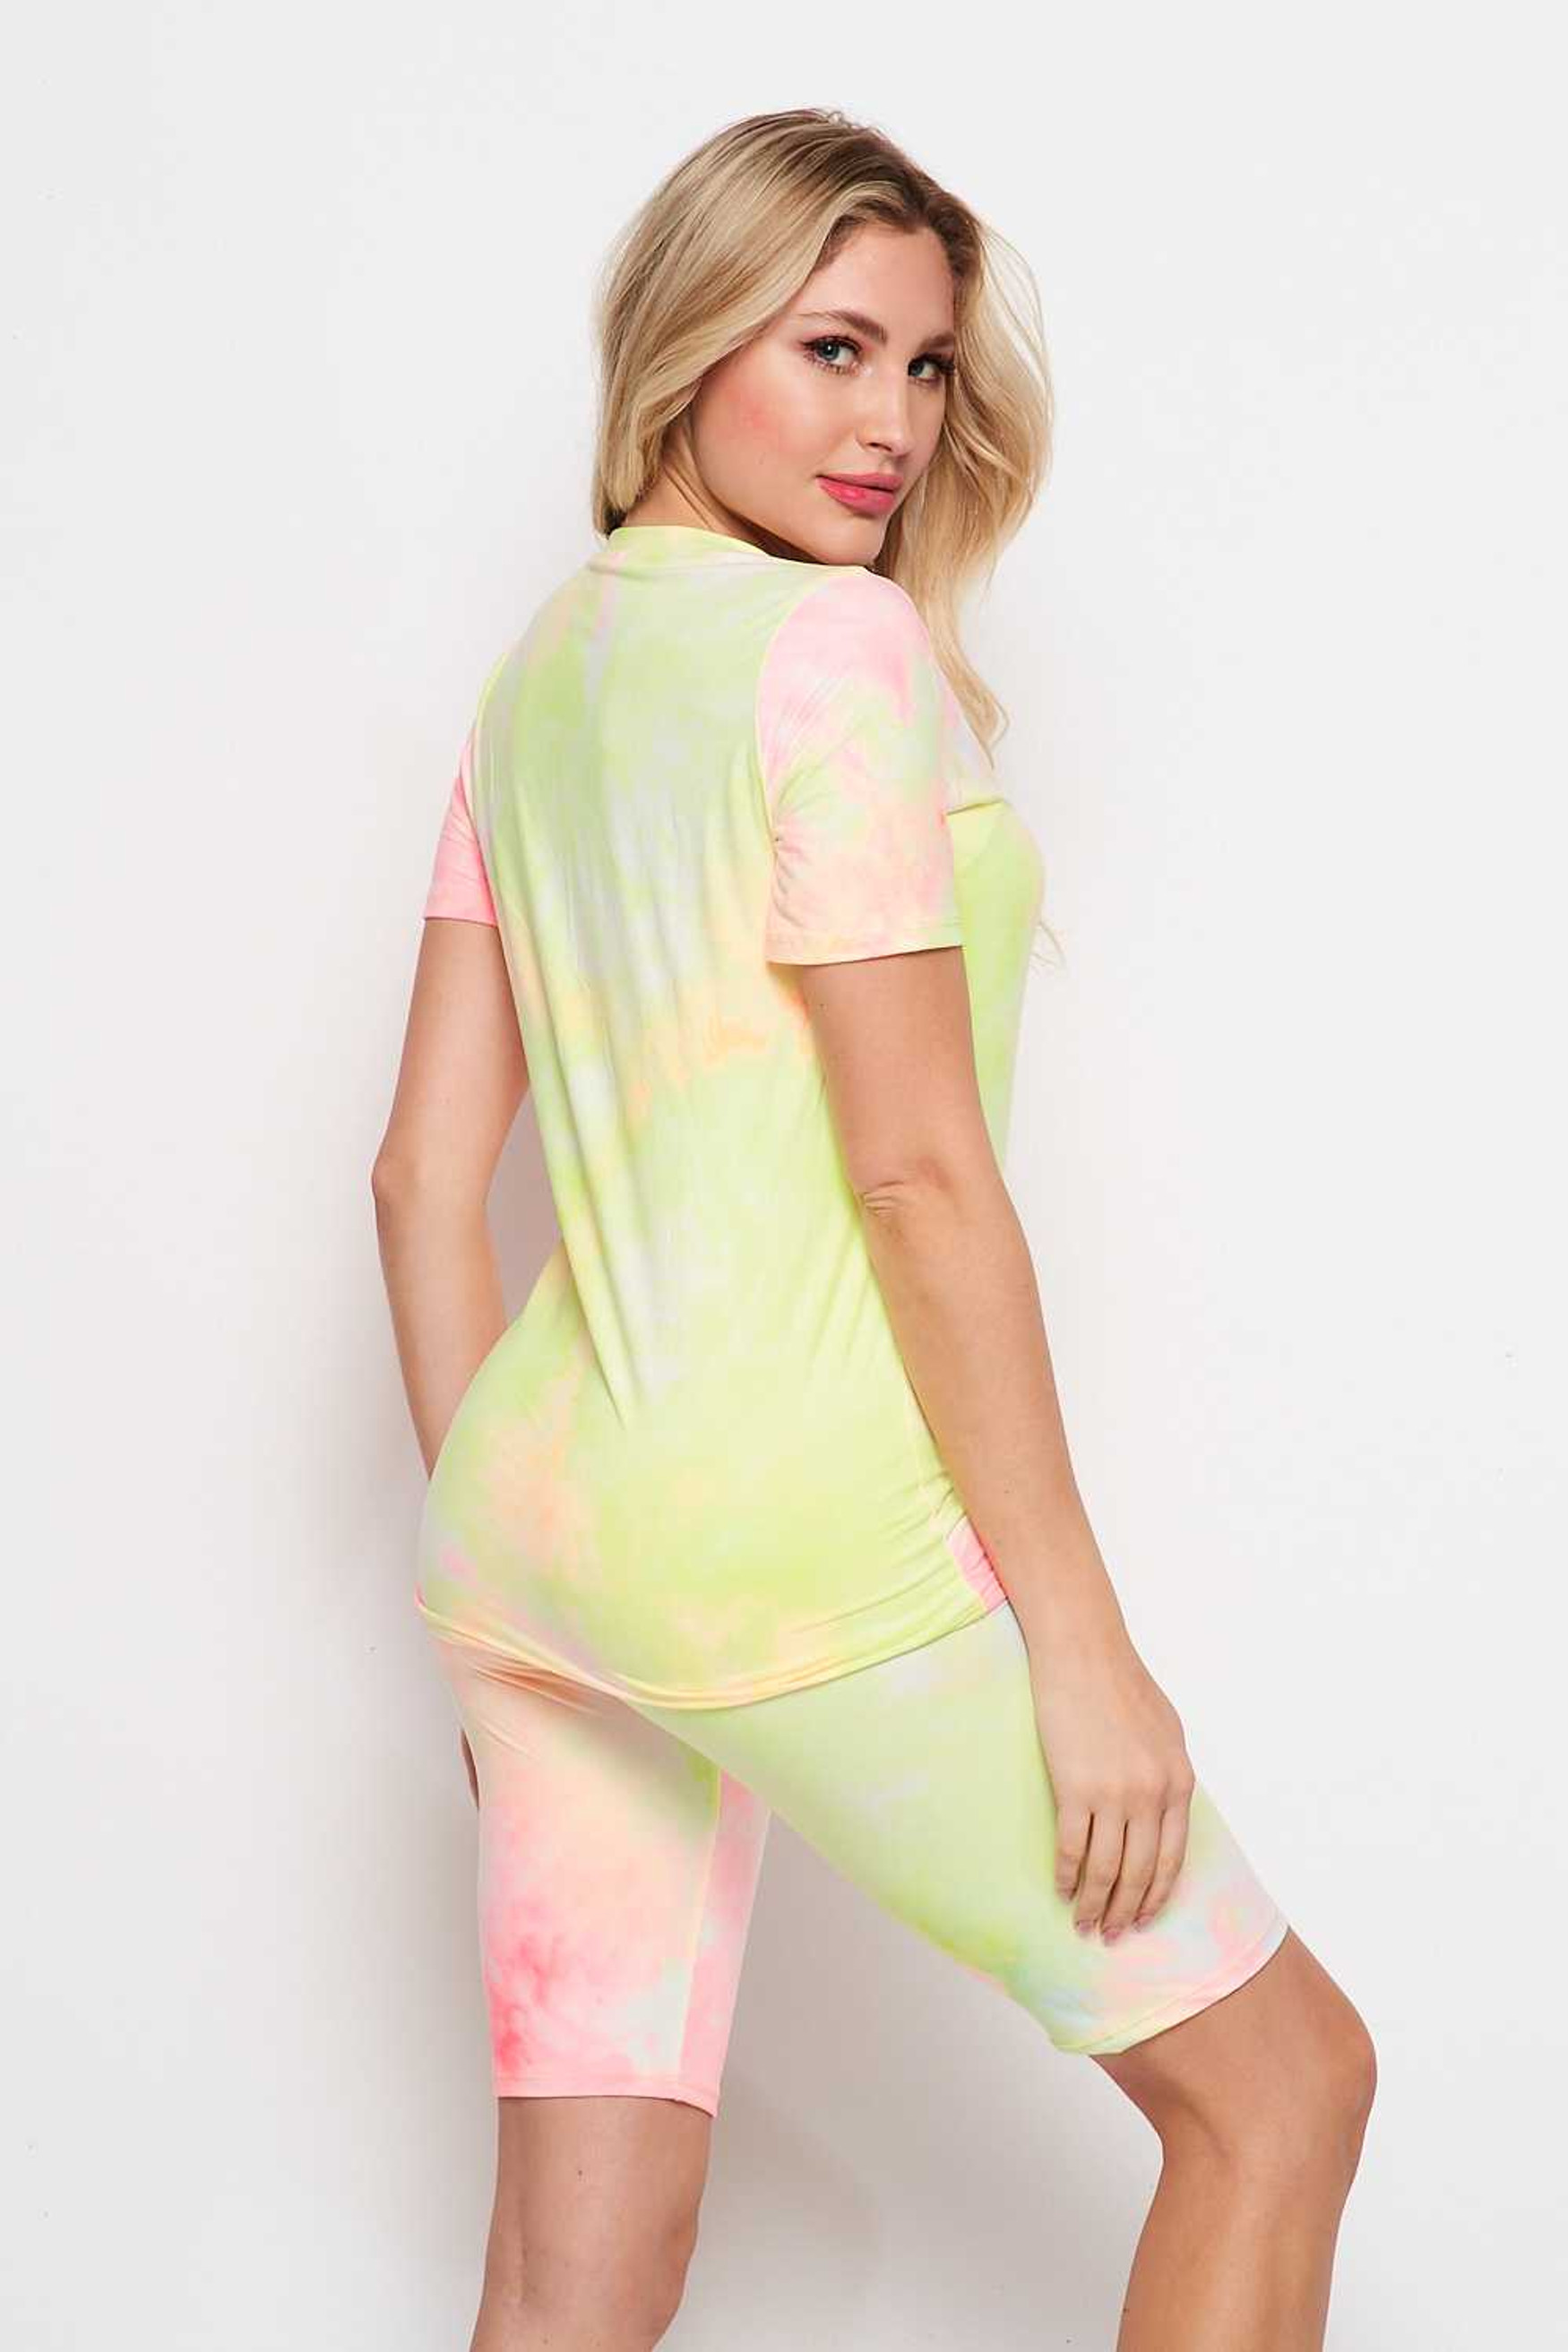 2 Piece Buttery Soft Pink and Yellow Tie Dye Biker Shorts and T-Shirt Set - Plus Size